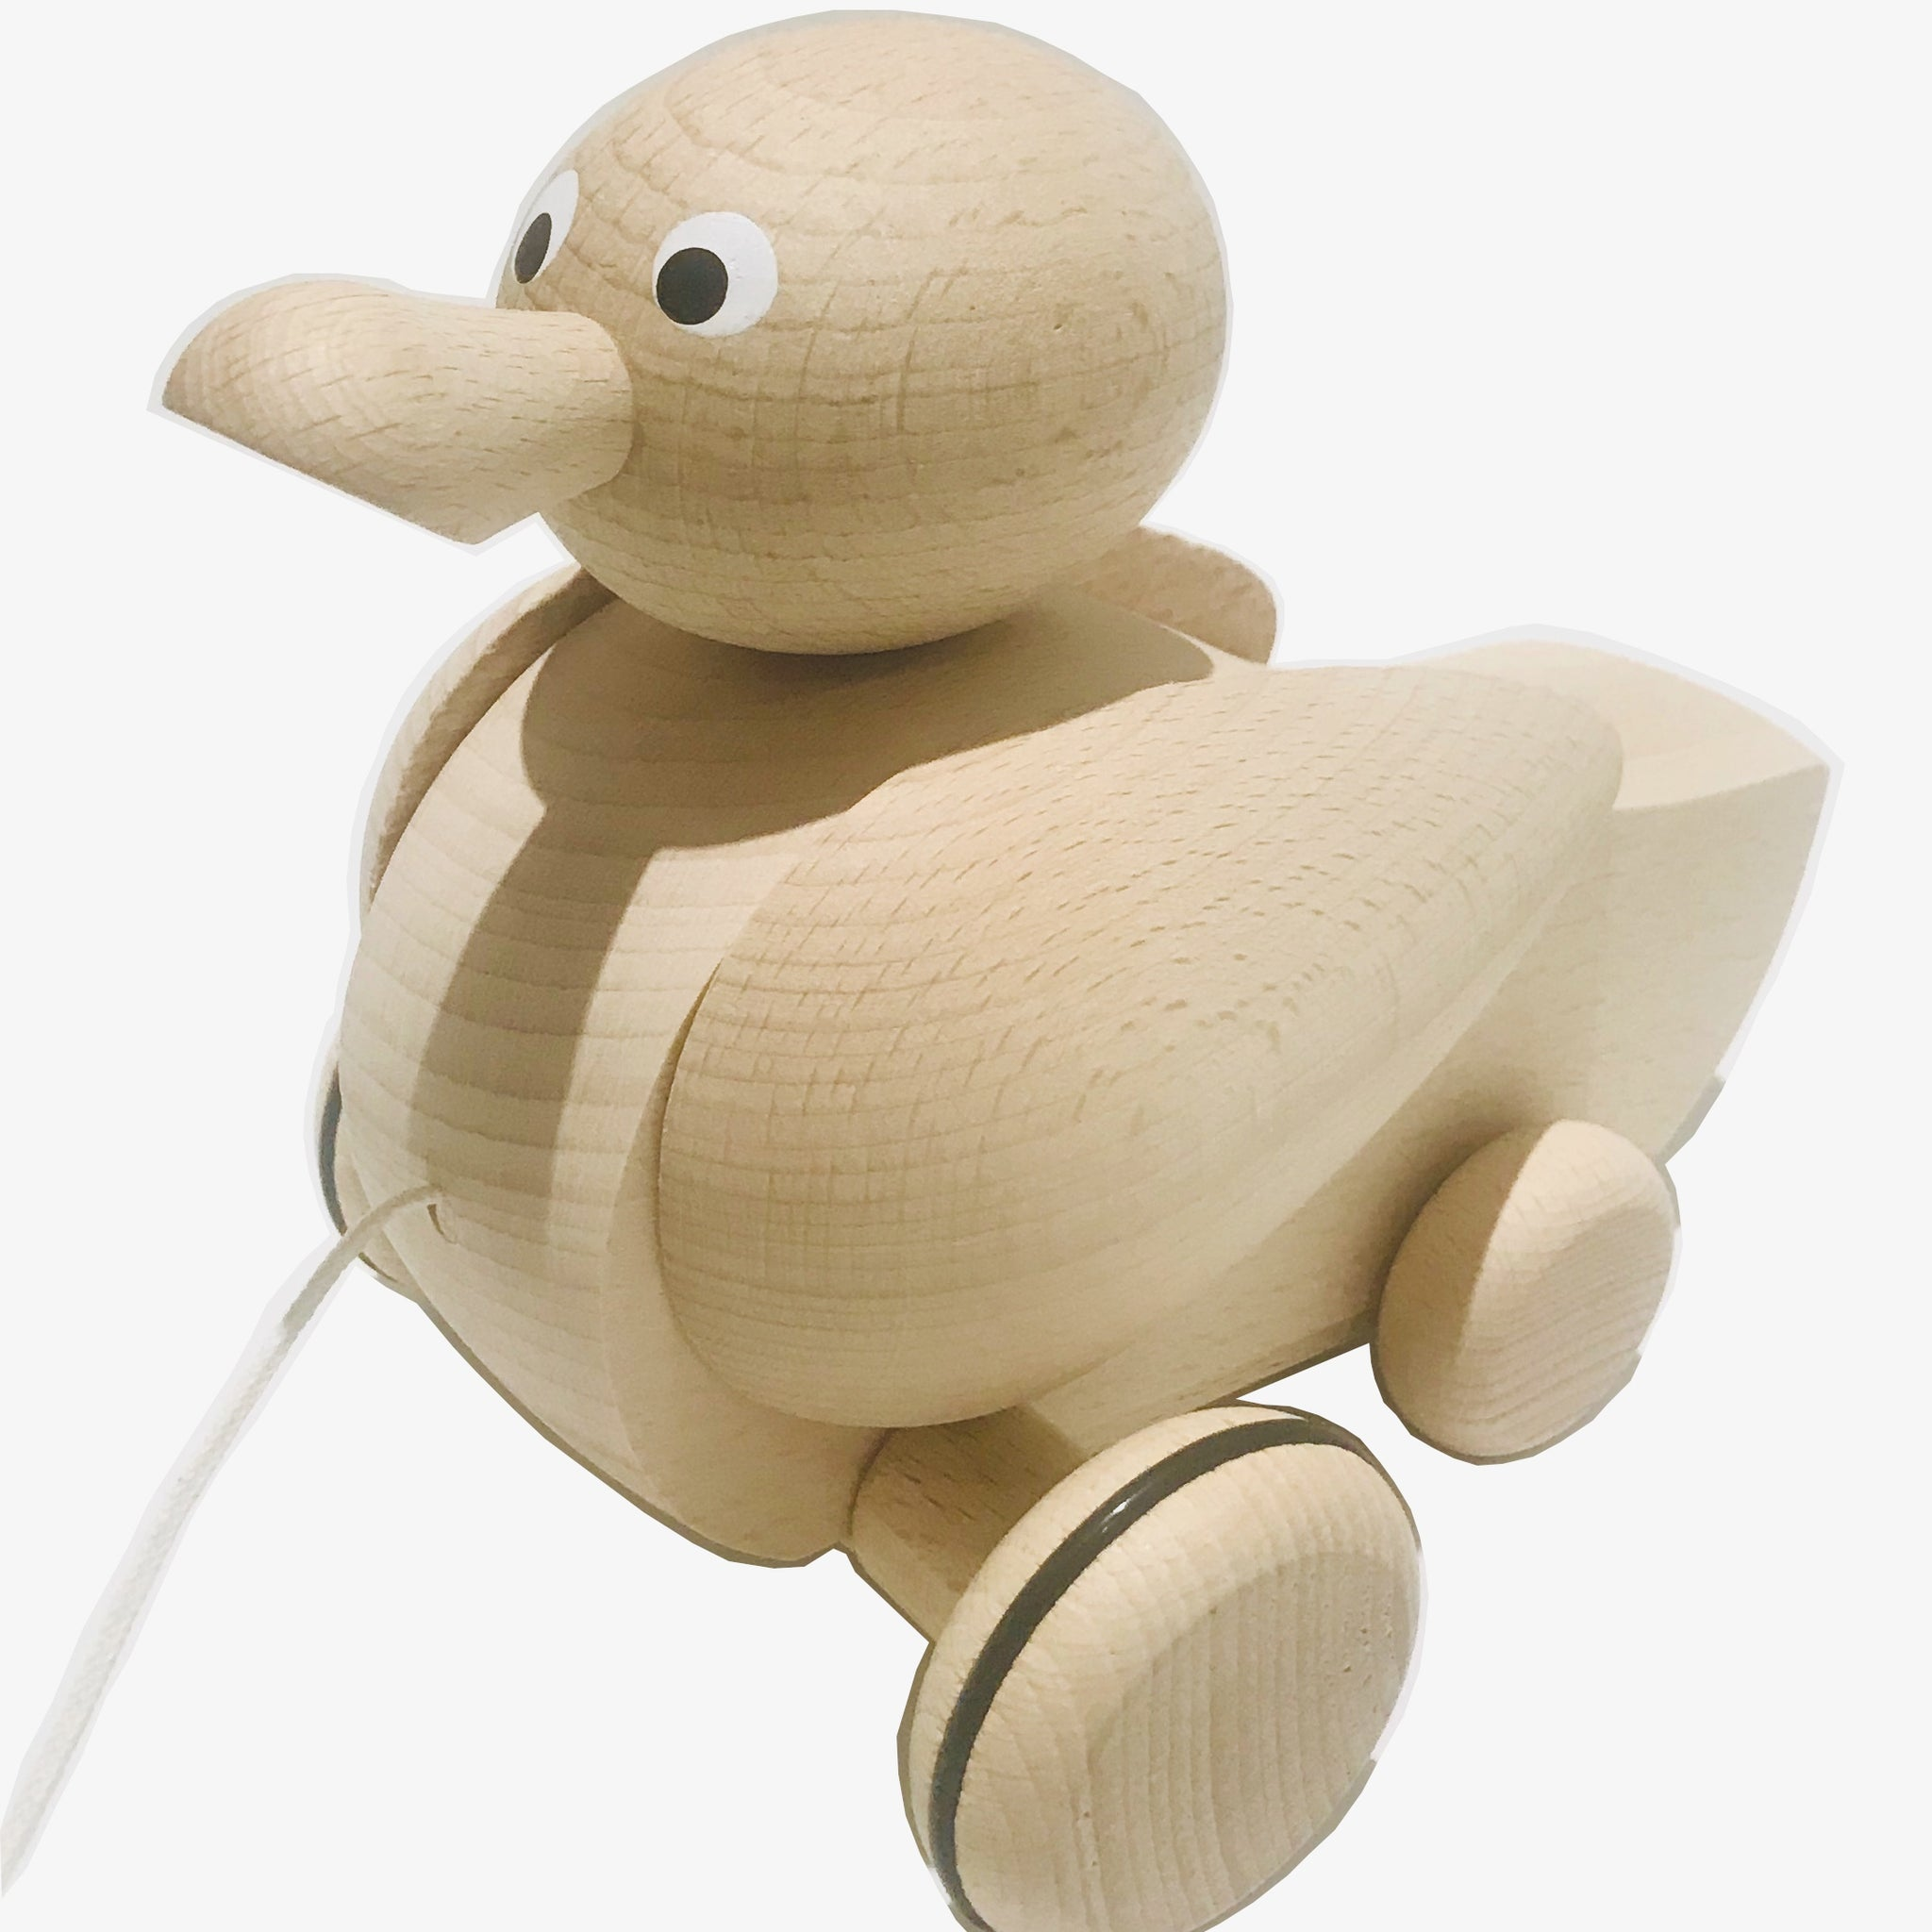 Handmade, high quality wooden toys for children and babies. Pull along wooden duck toy from Ella & Frederik available at Suzemu gift shop.